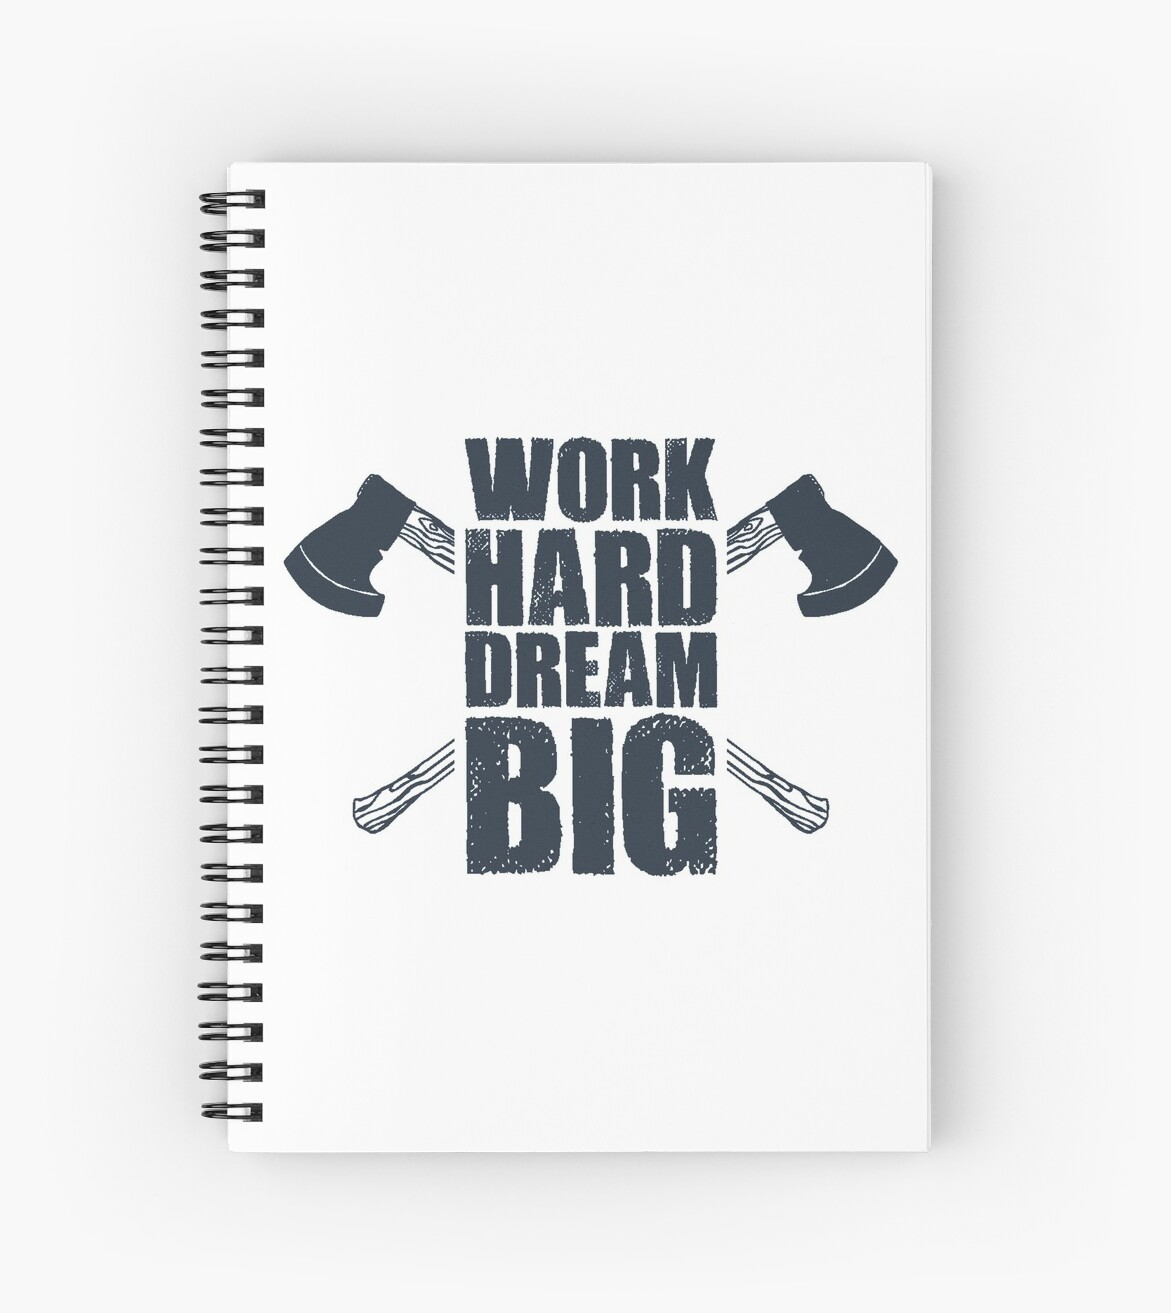 Work Hard Dream Big Inspirational Quote With Axes Spiral Notebooks